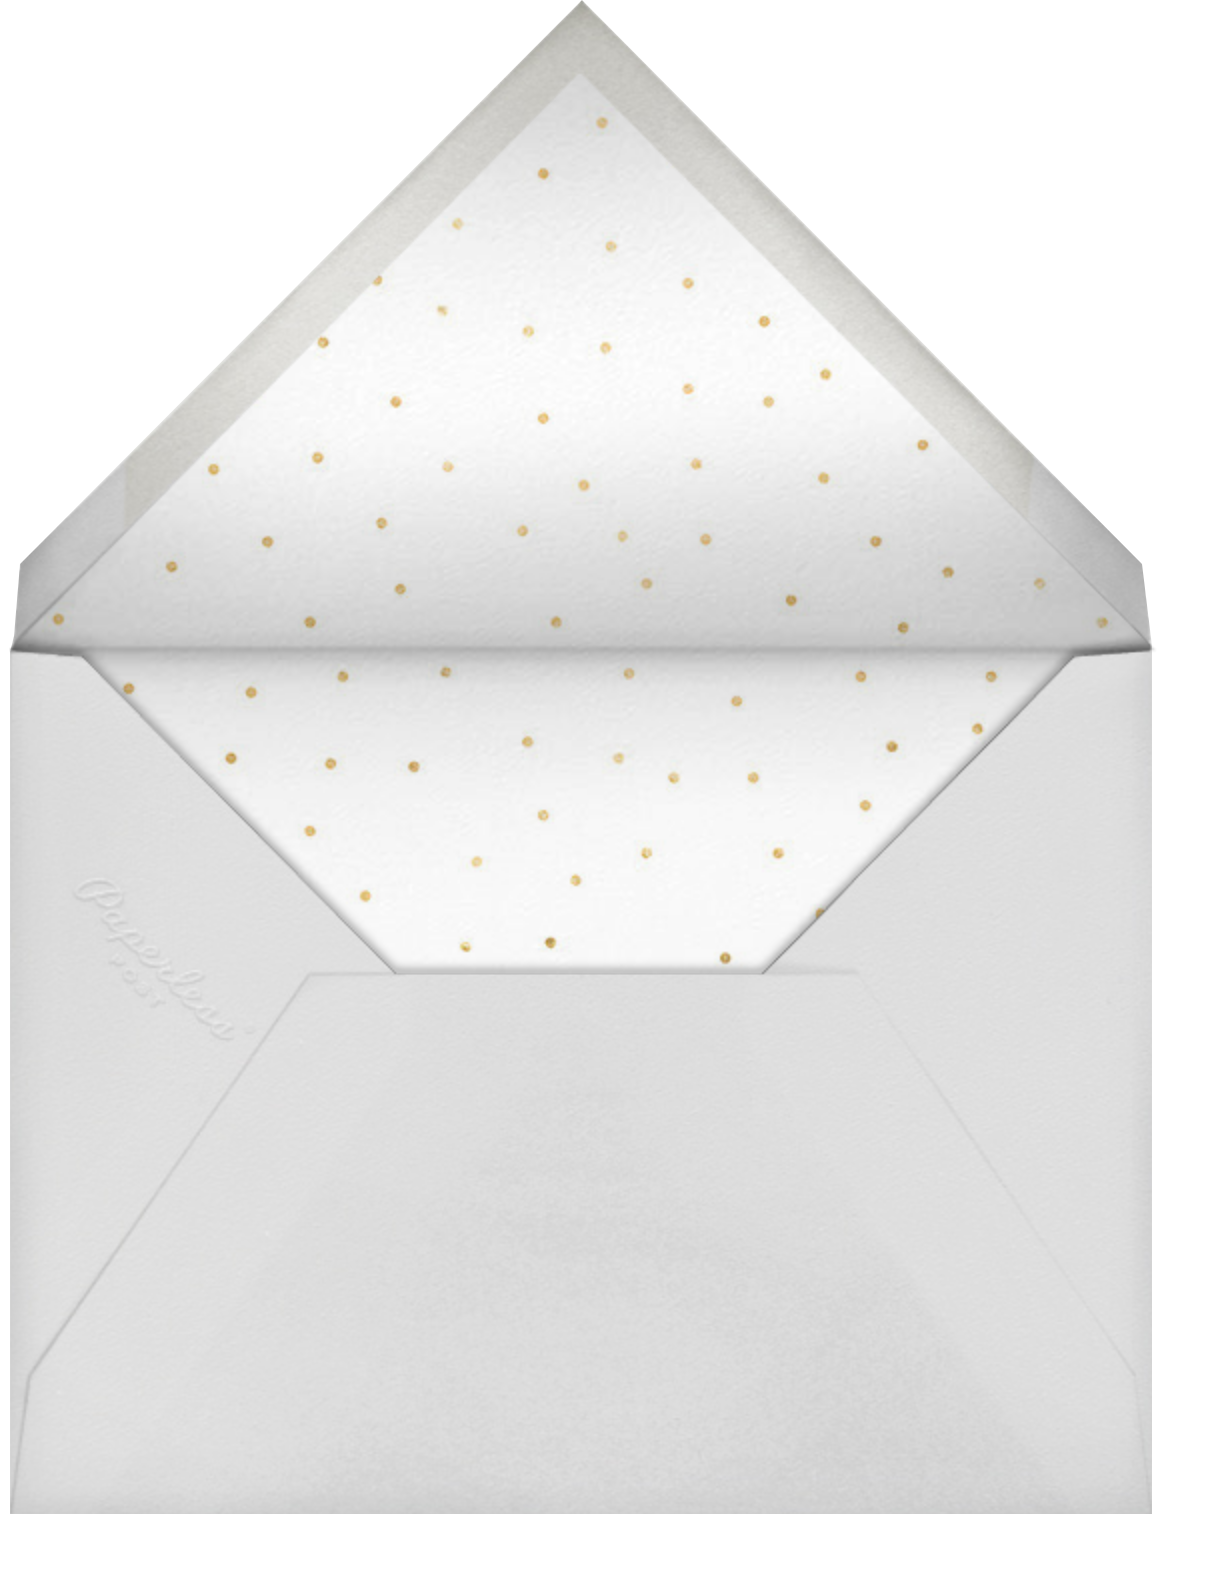 Gingerbread House (Invitation) - Rifle Paper Co. - Holiday party - envelope back